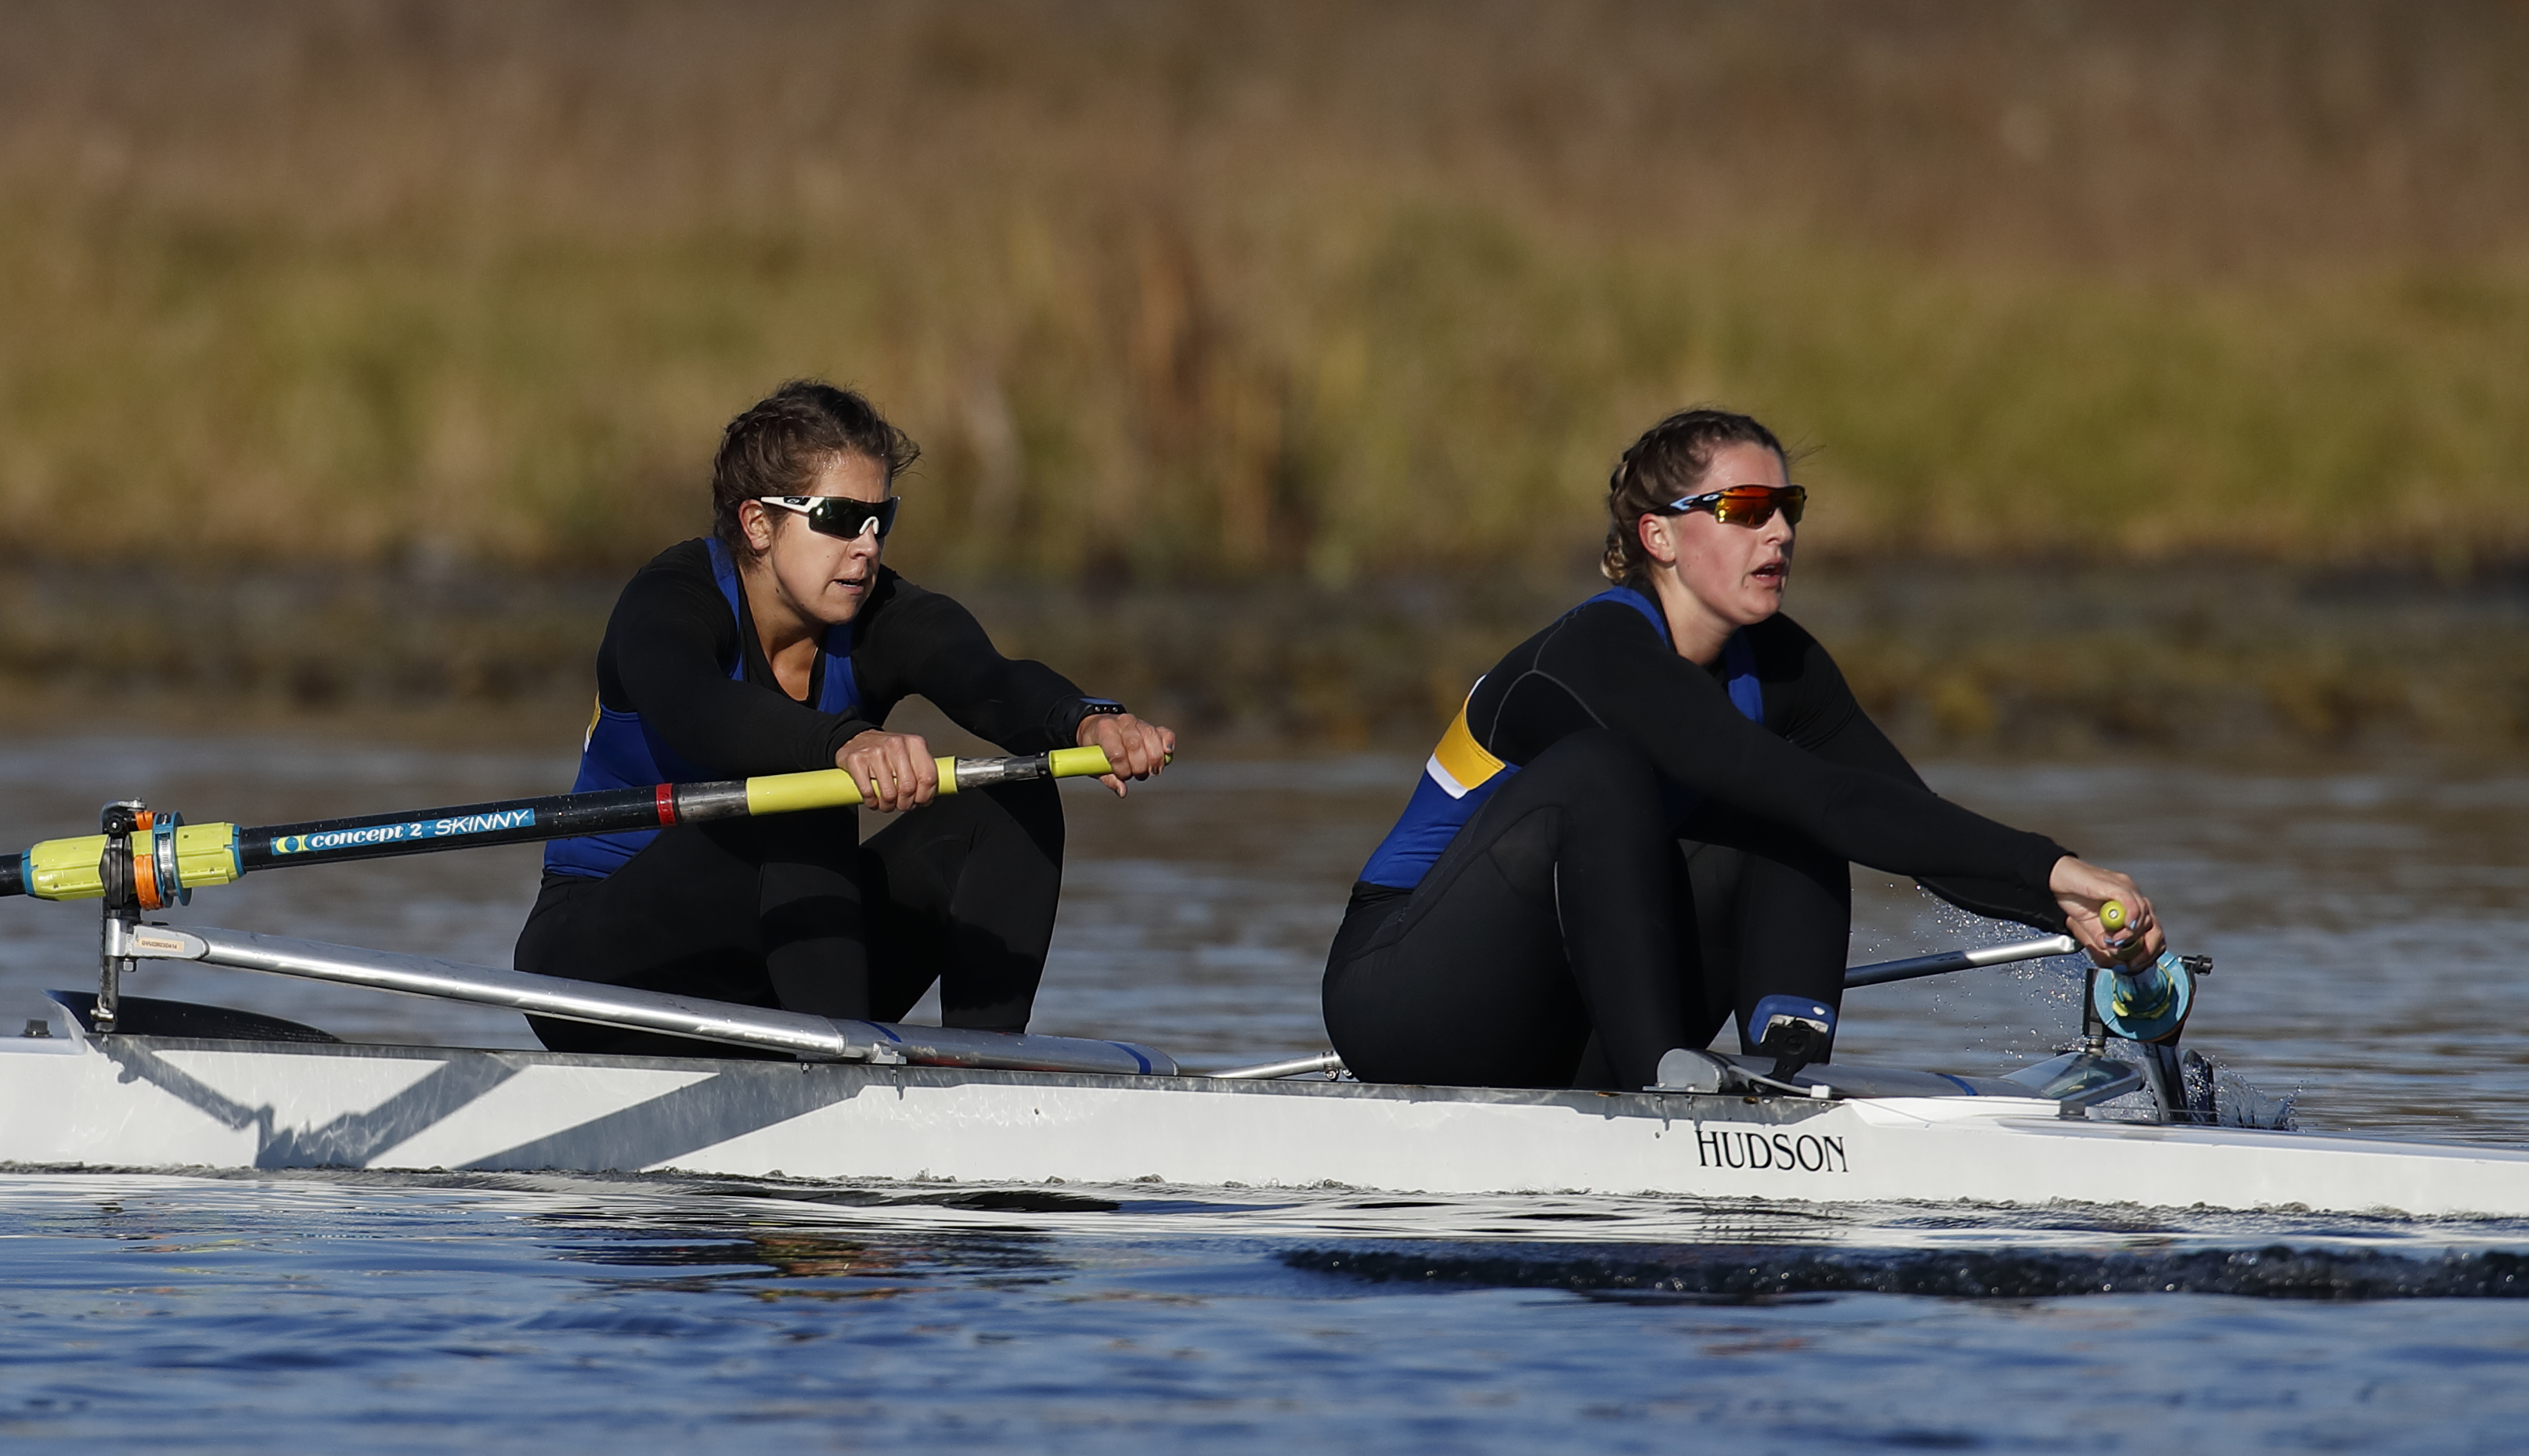 Sevick (left) is a member of UBC varsity rowing team today.